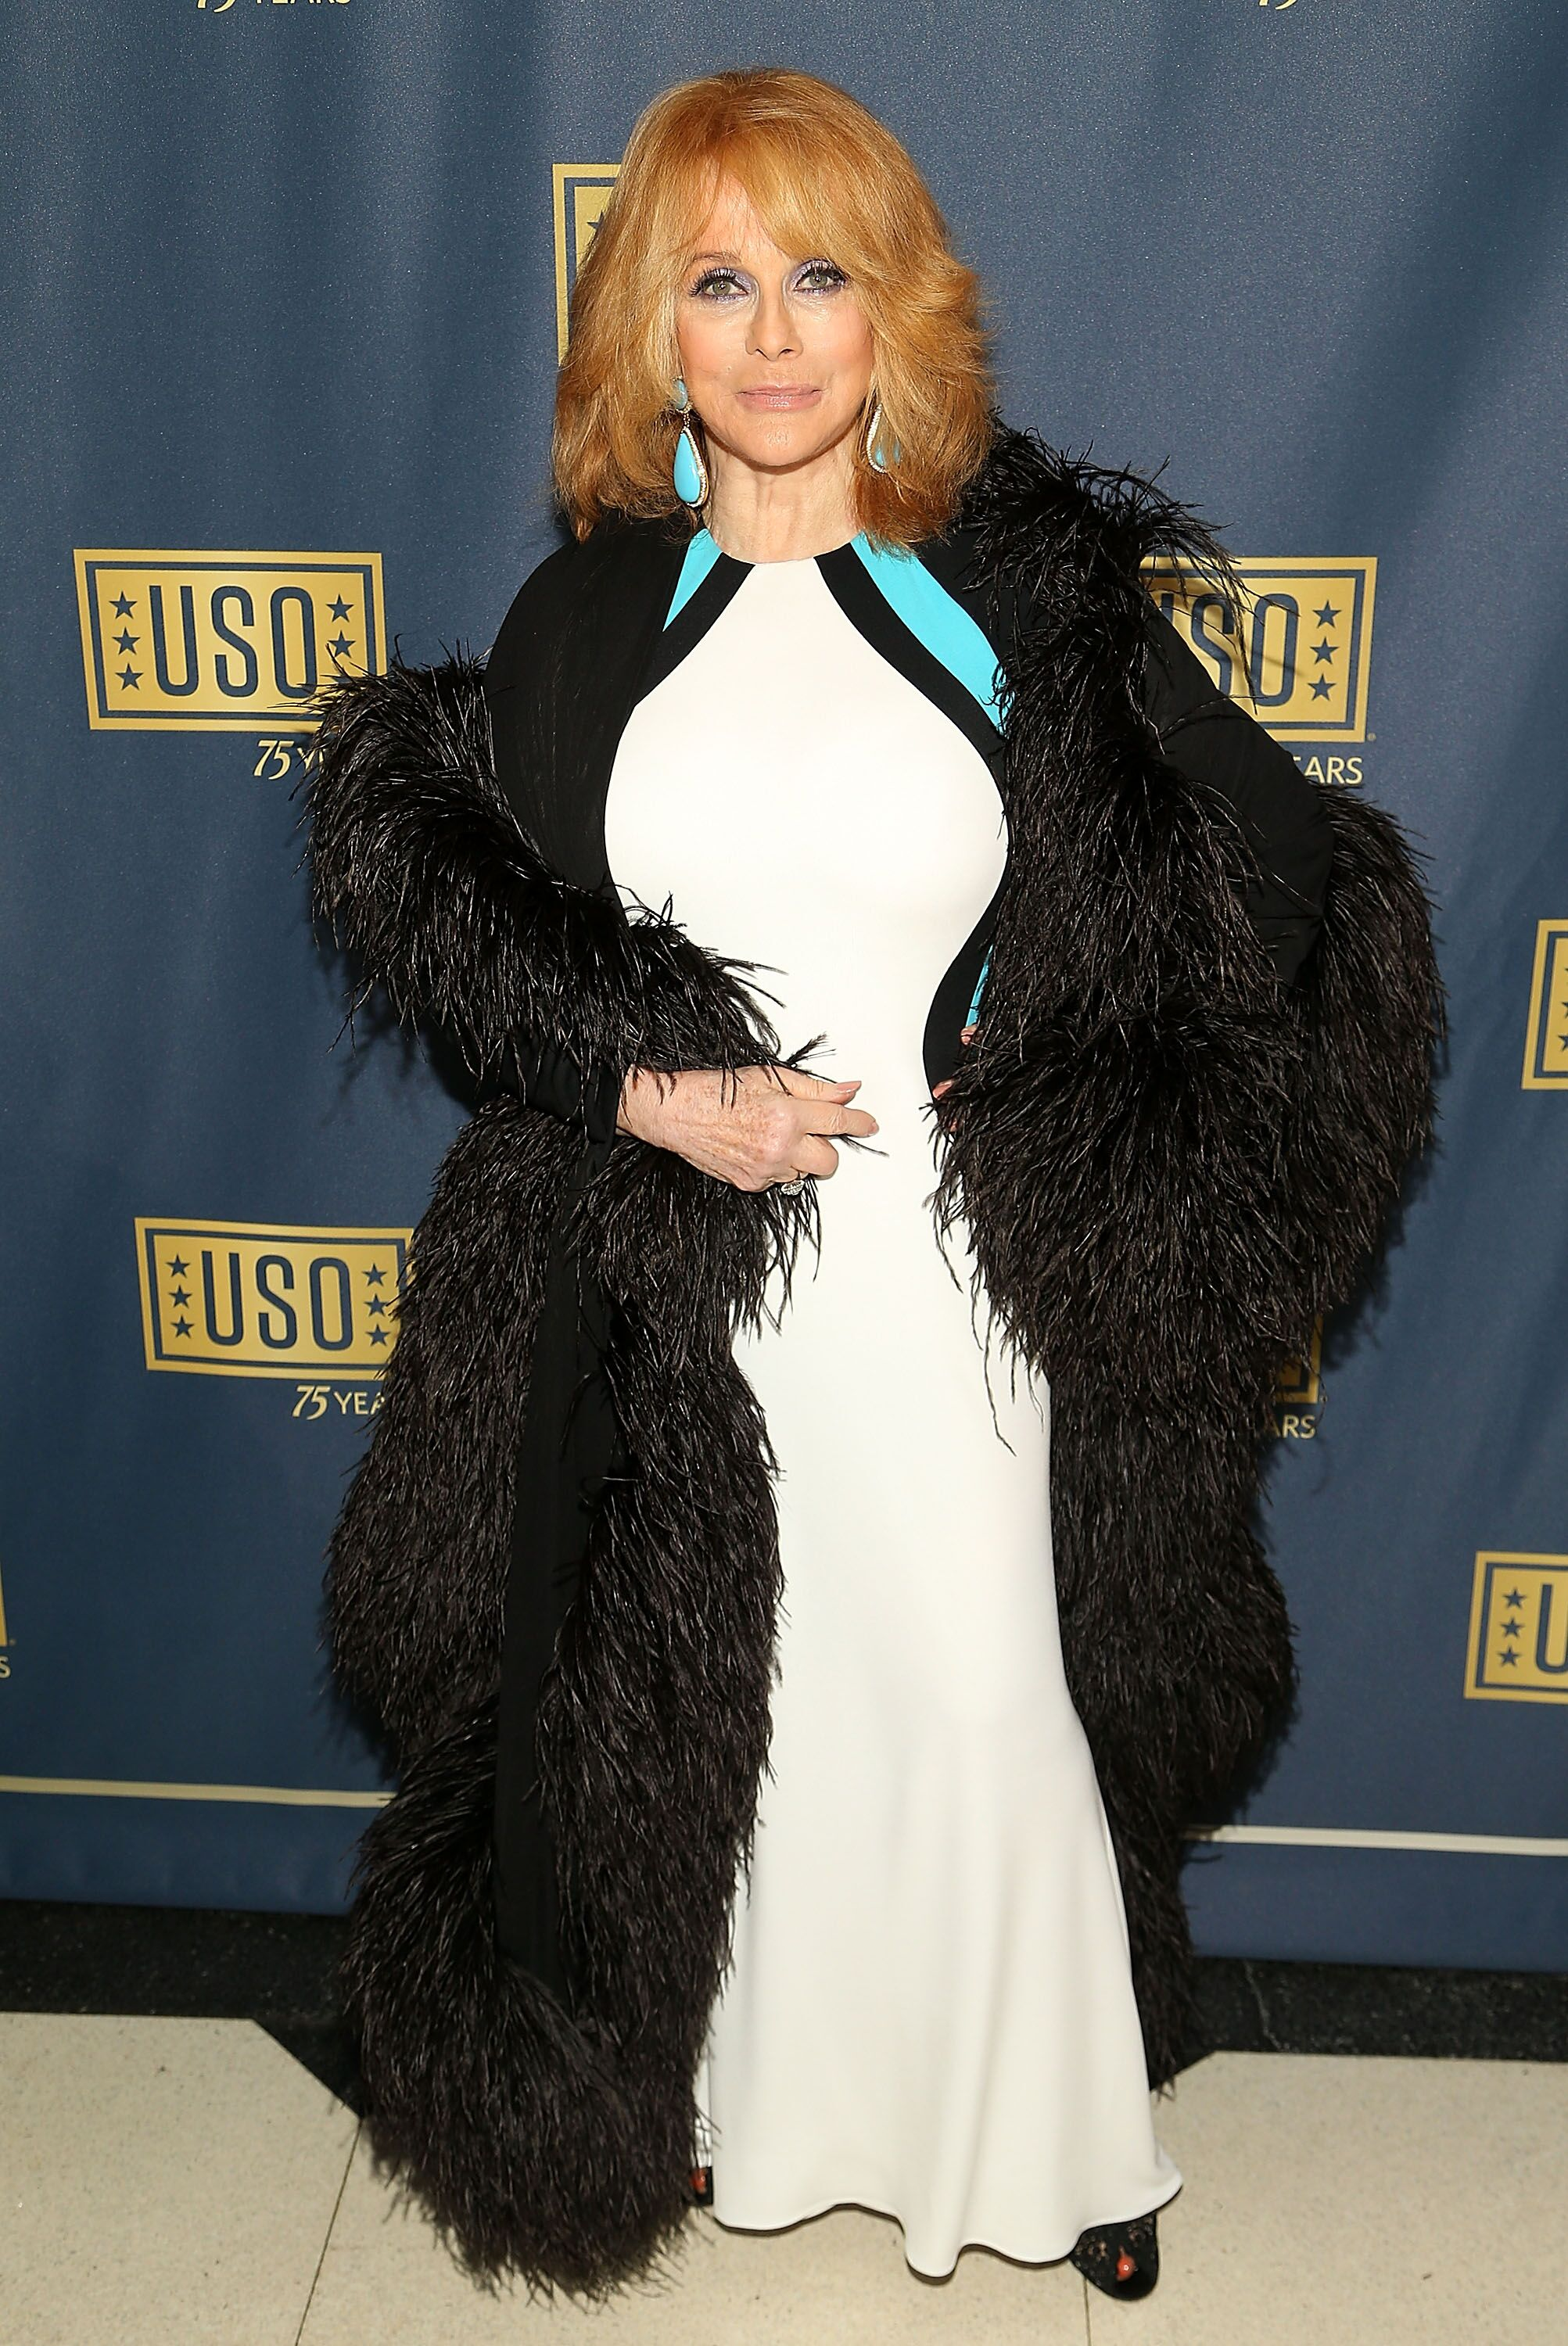 Actress Ann-Margaret attends the 2016 USO Gala on October 20, 2016 at DAR Constitution Hall in Washington, DC   Photo: Getty Images